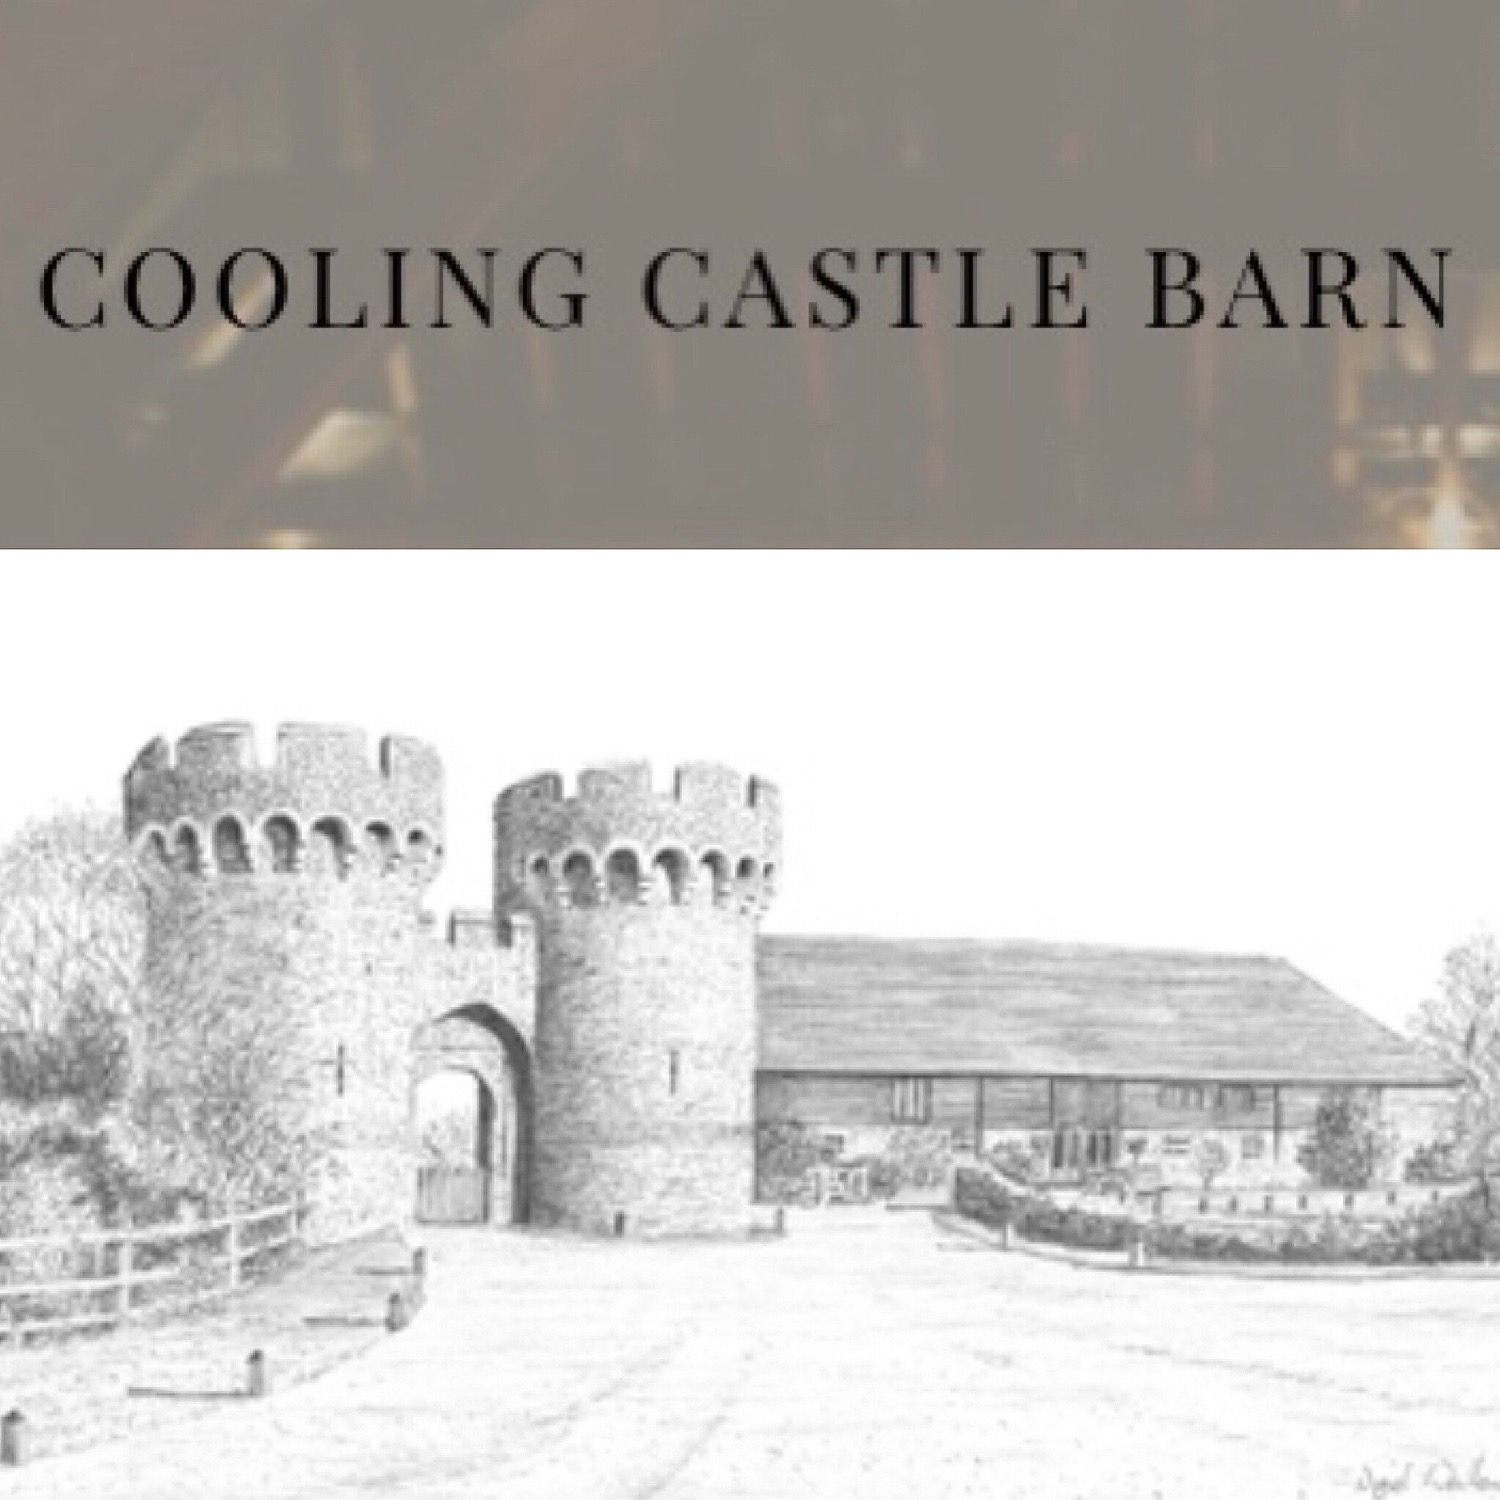 Cooling Castle Barn